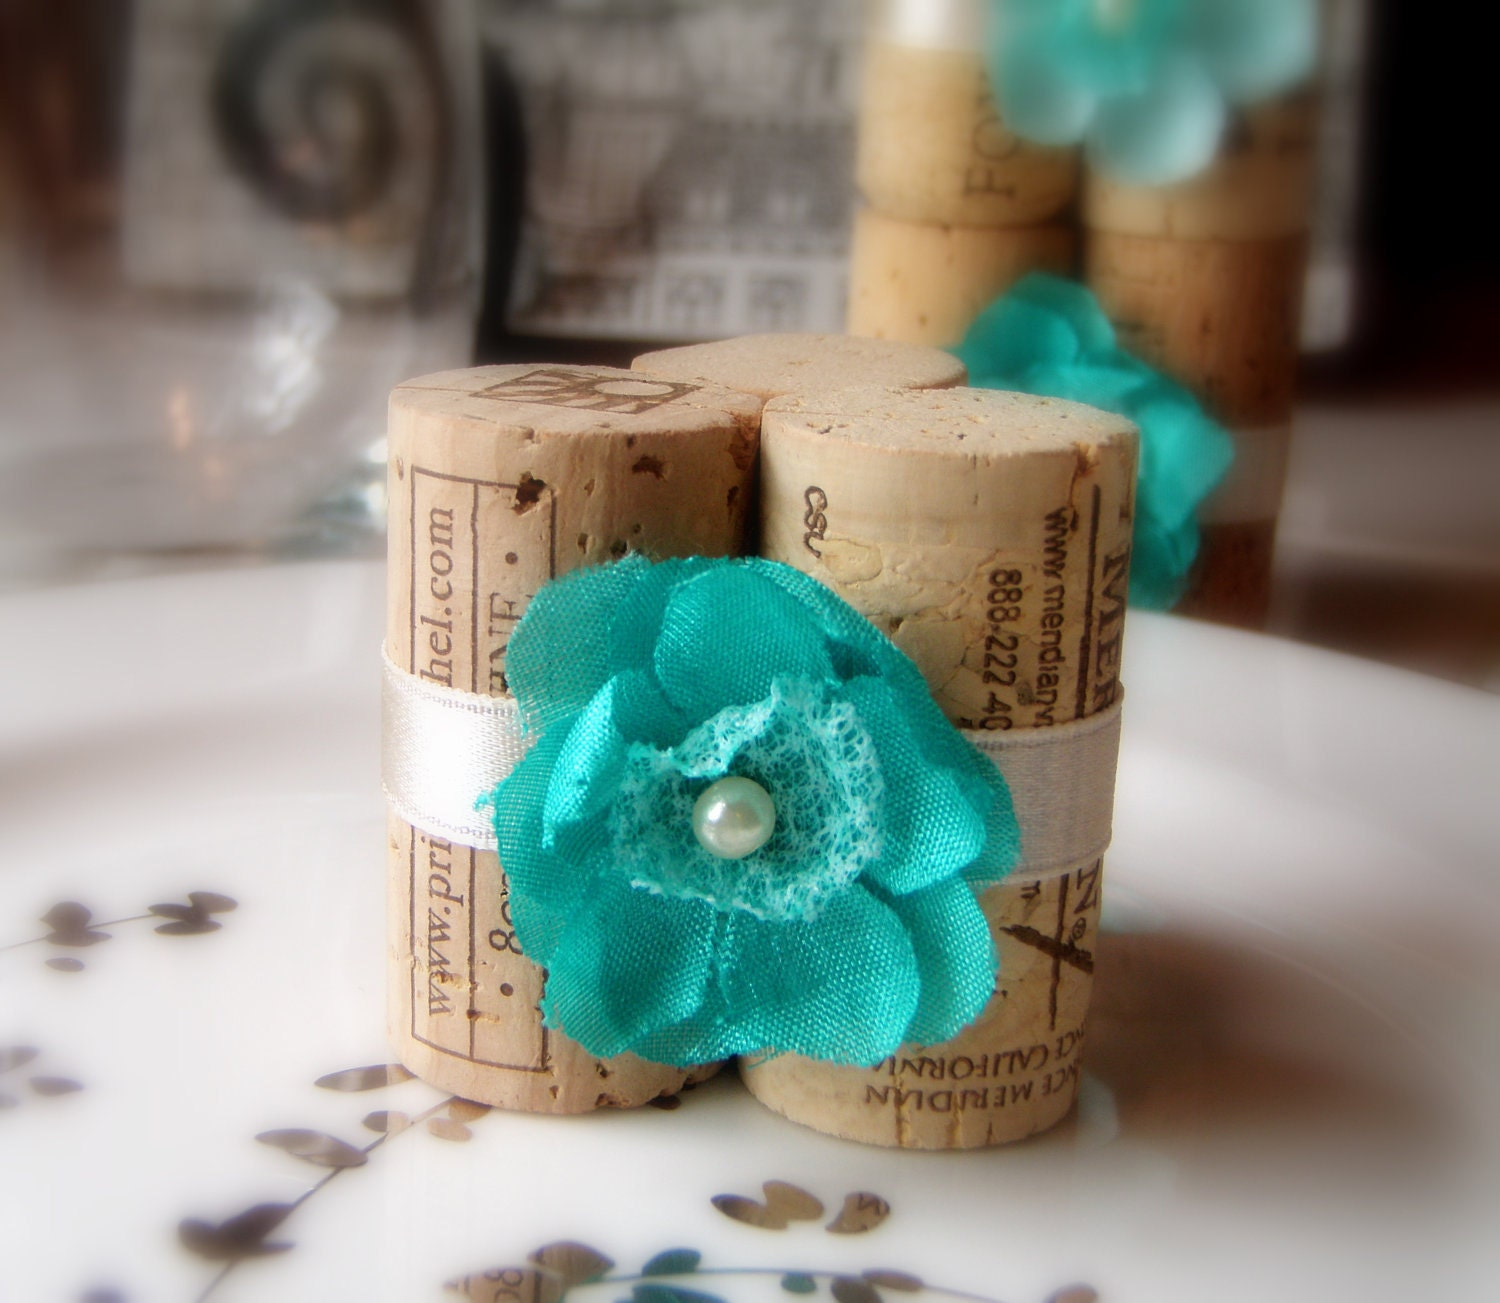 Wedding Place Card Holders in Teal Blossom, Set of 10 - All New for Spring Wedding 2012 - KarasVineyardWedding